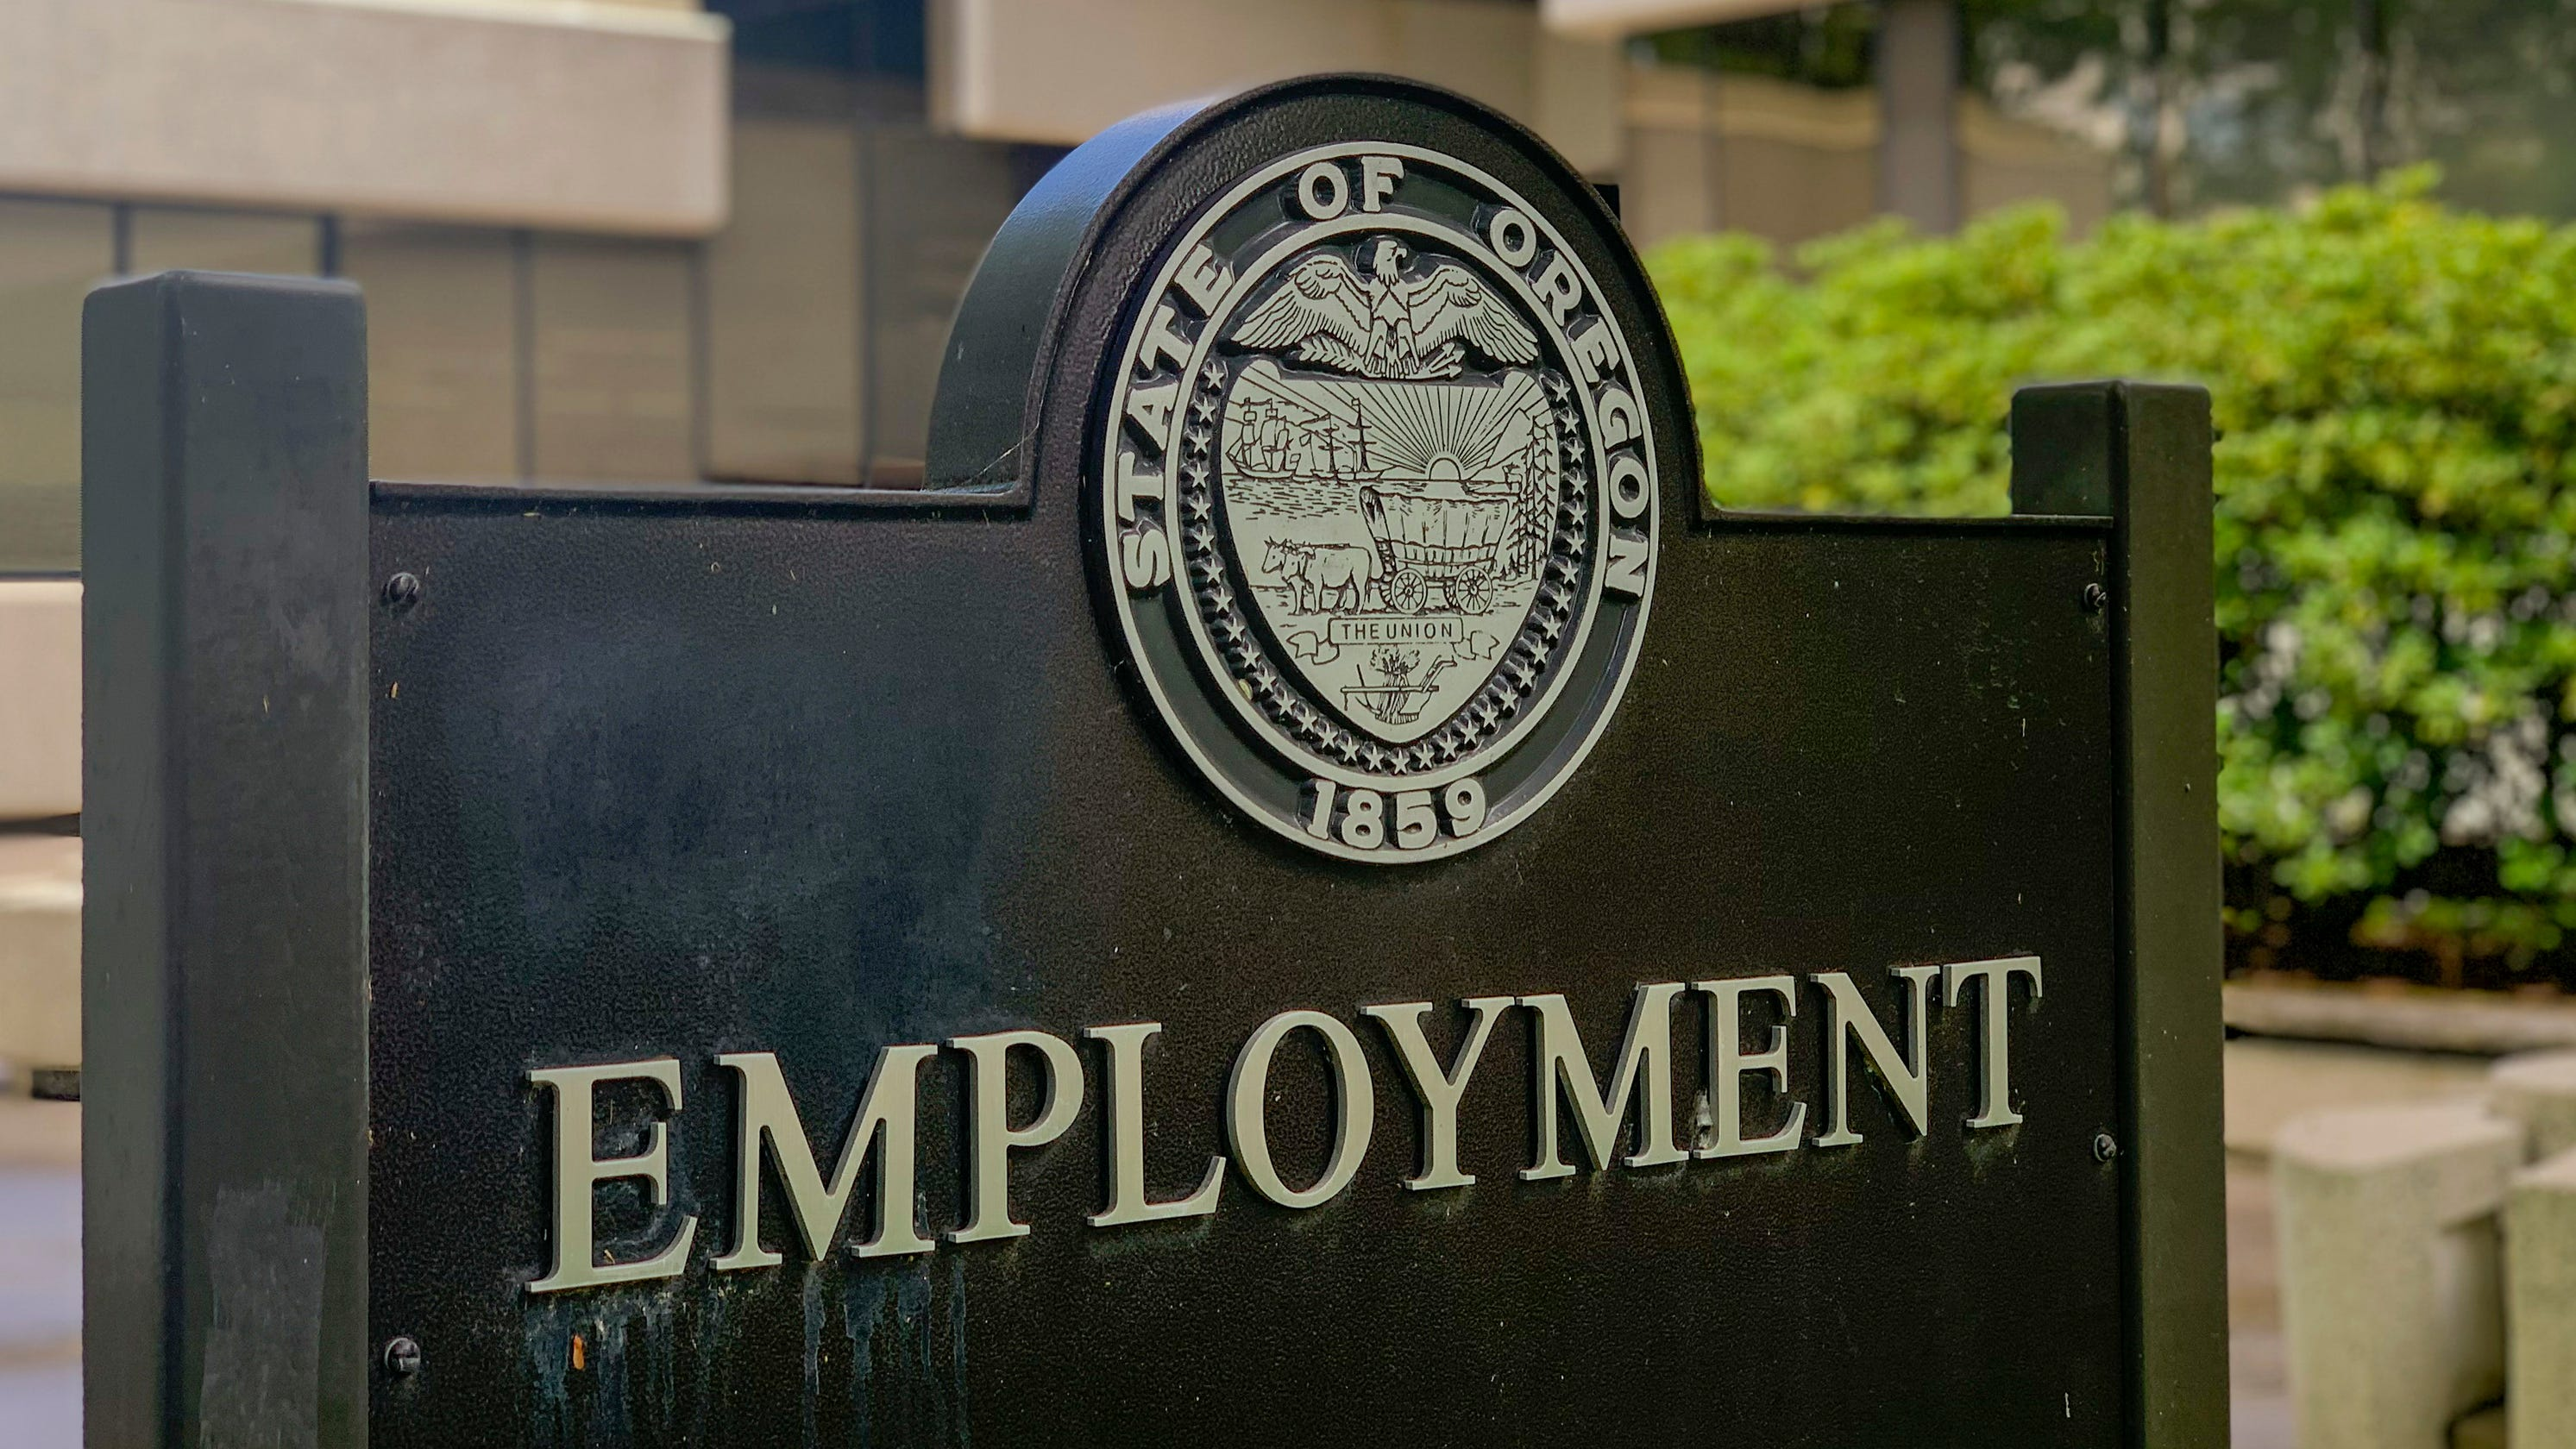 With stay home orders reinstated, Oregon could see second wave of unemployment claims